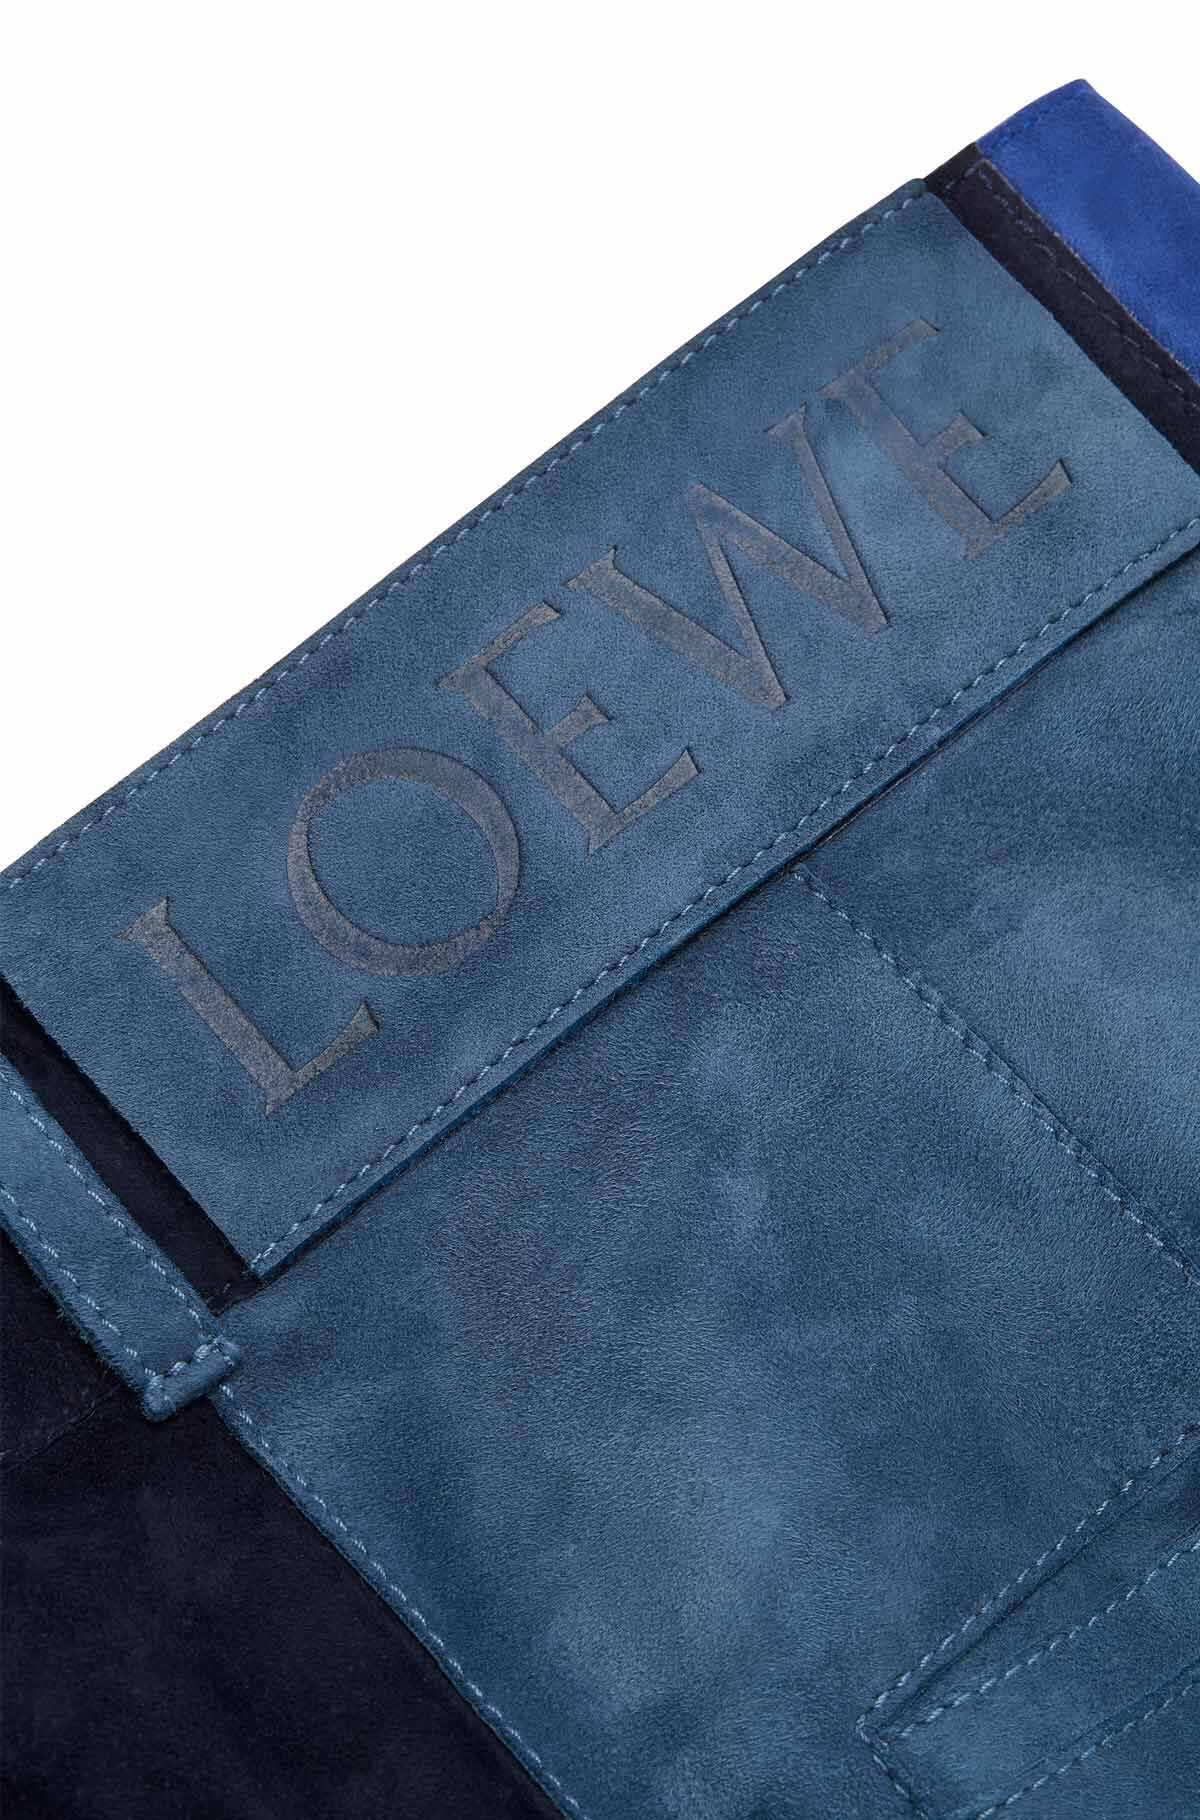 LOEWE Trousrs Suede Panels & Textile 蓝色/白色 all